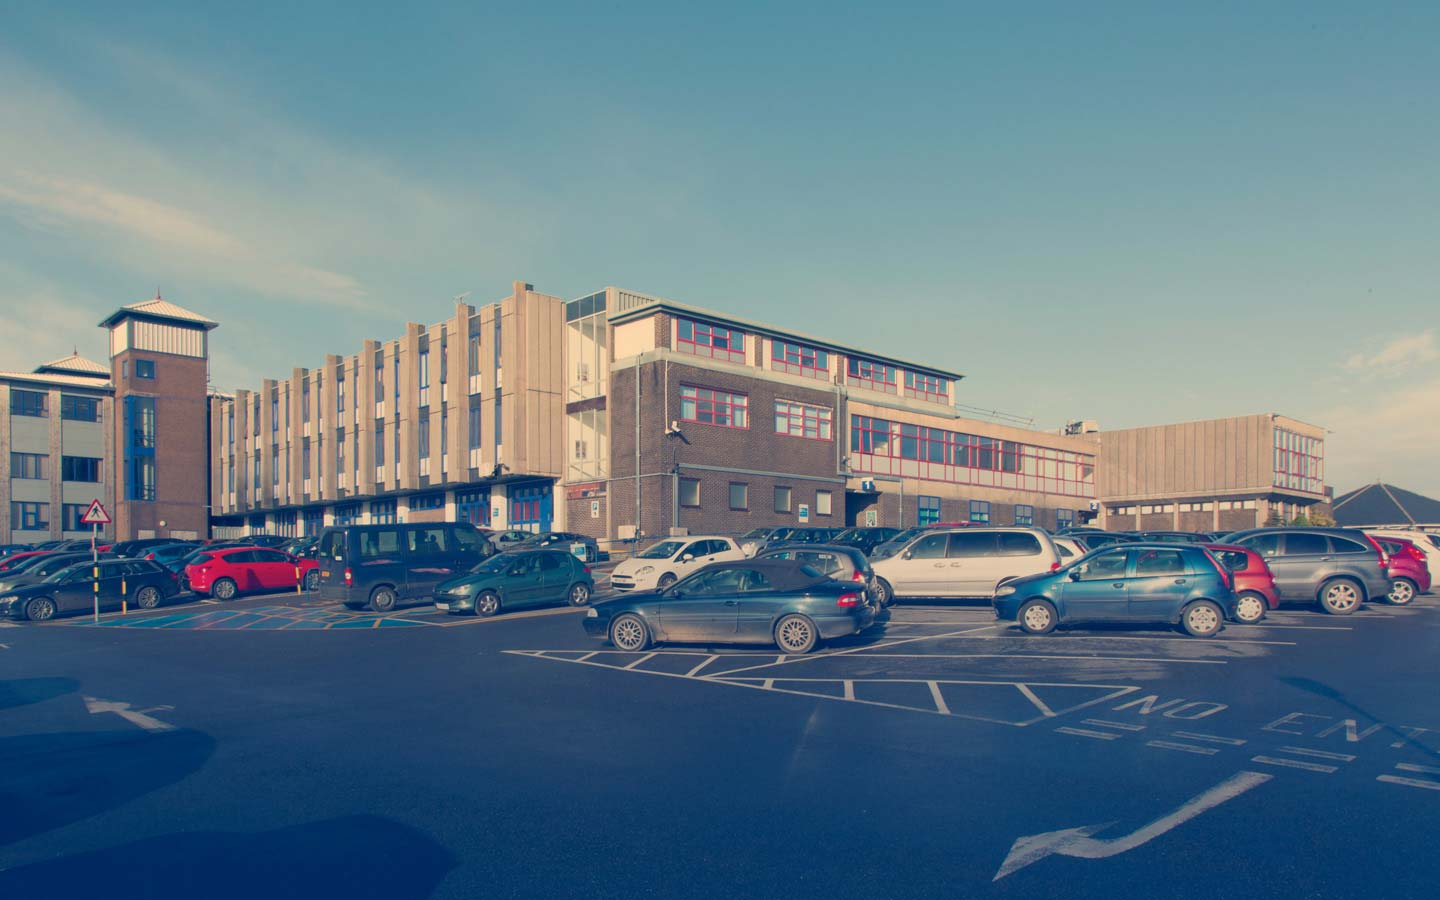 Parking plymouth marjon university - Plymouth life centre swimming pool timetable ...